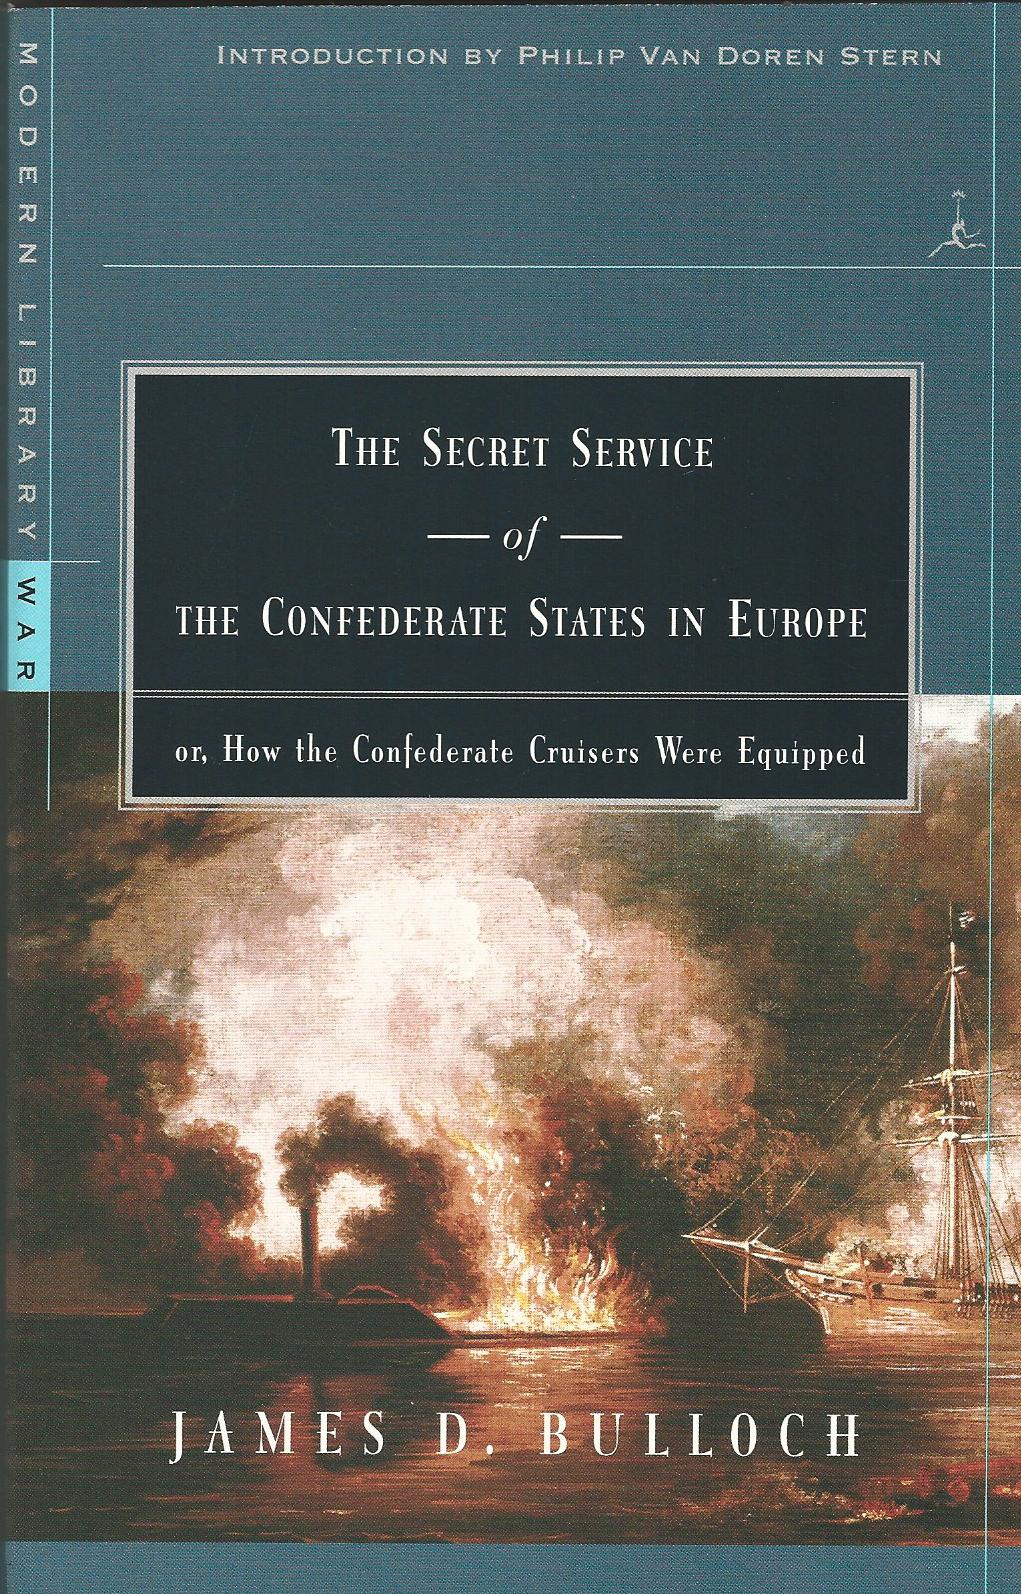 Image for The Secret Service of the Confederate States in Europe, Or, How the Confederate Cruisers Were Equipped (Modern Library)